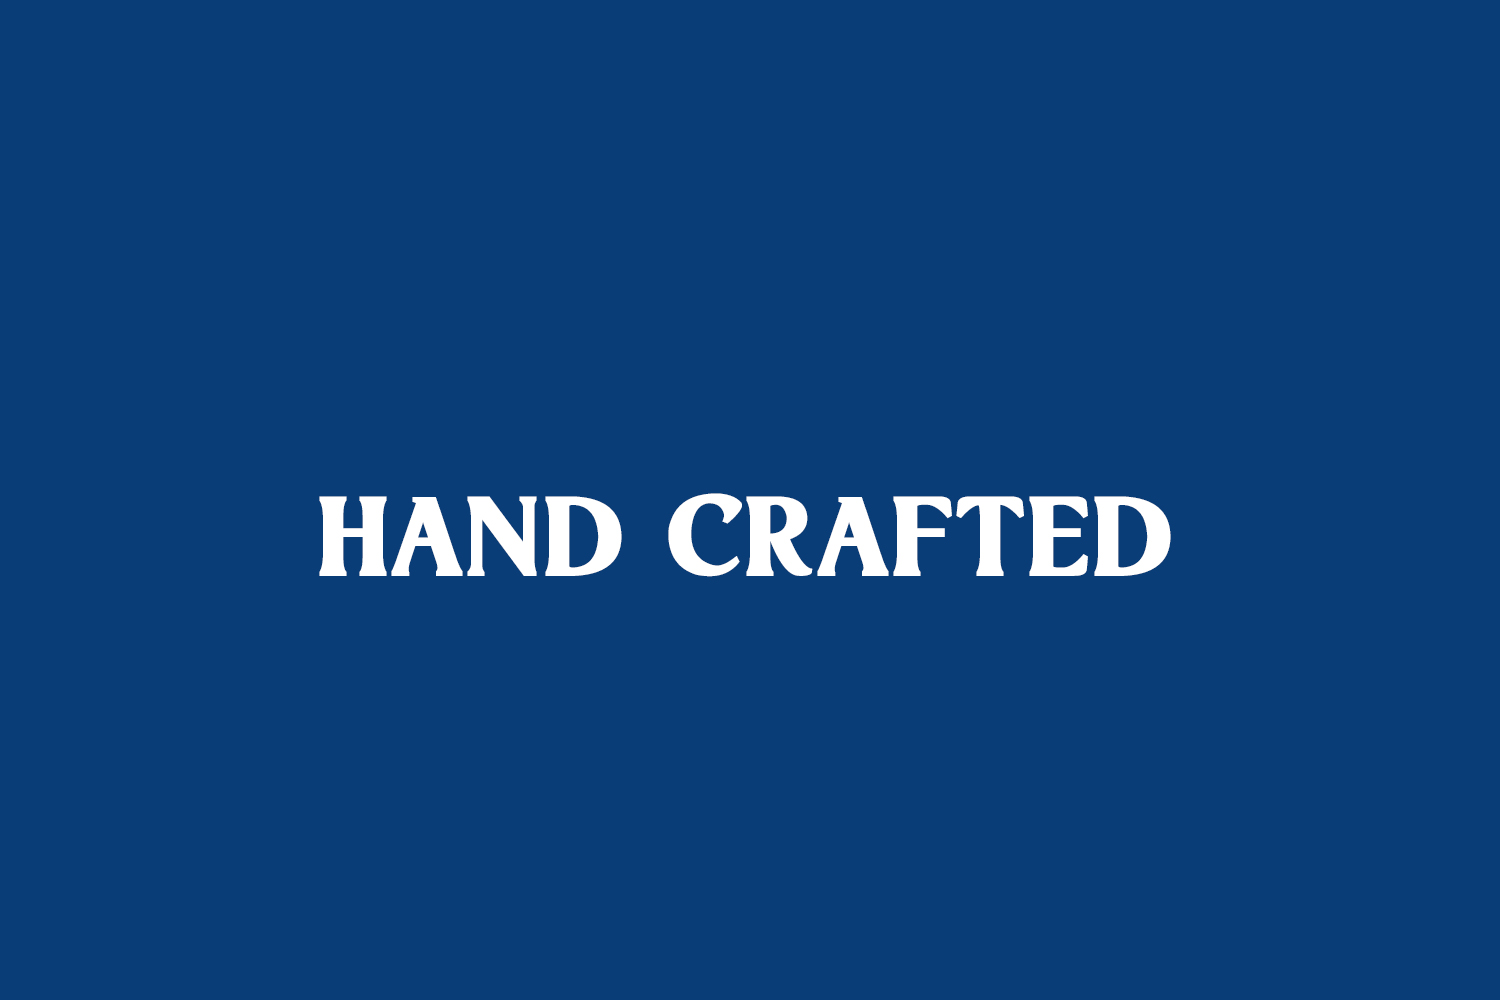 Hand Crafted Free Font